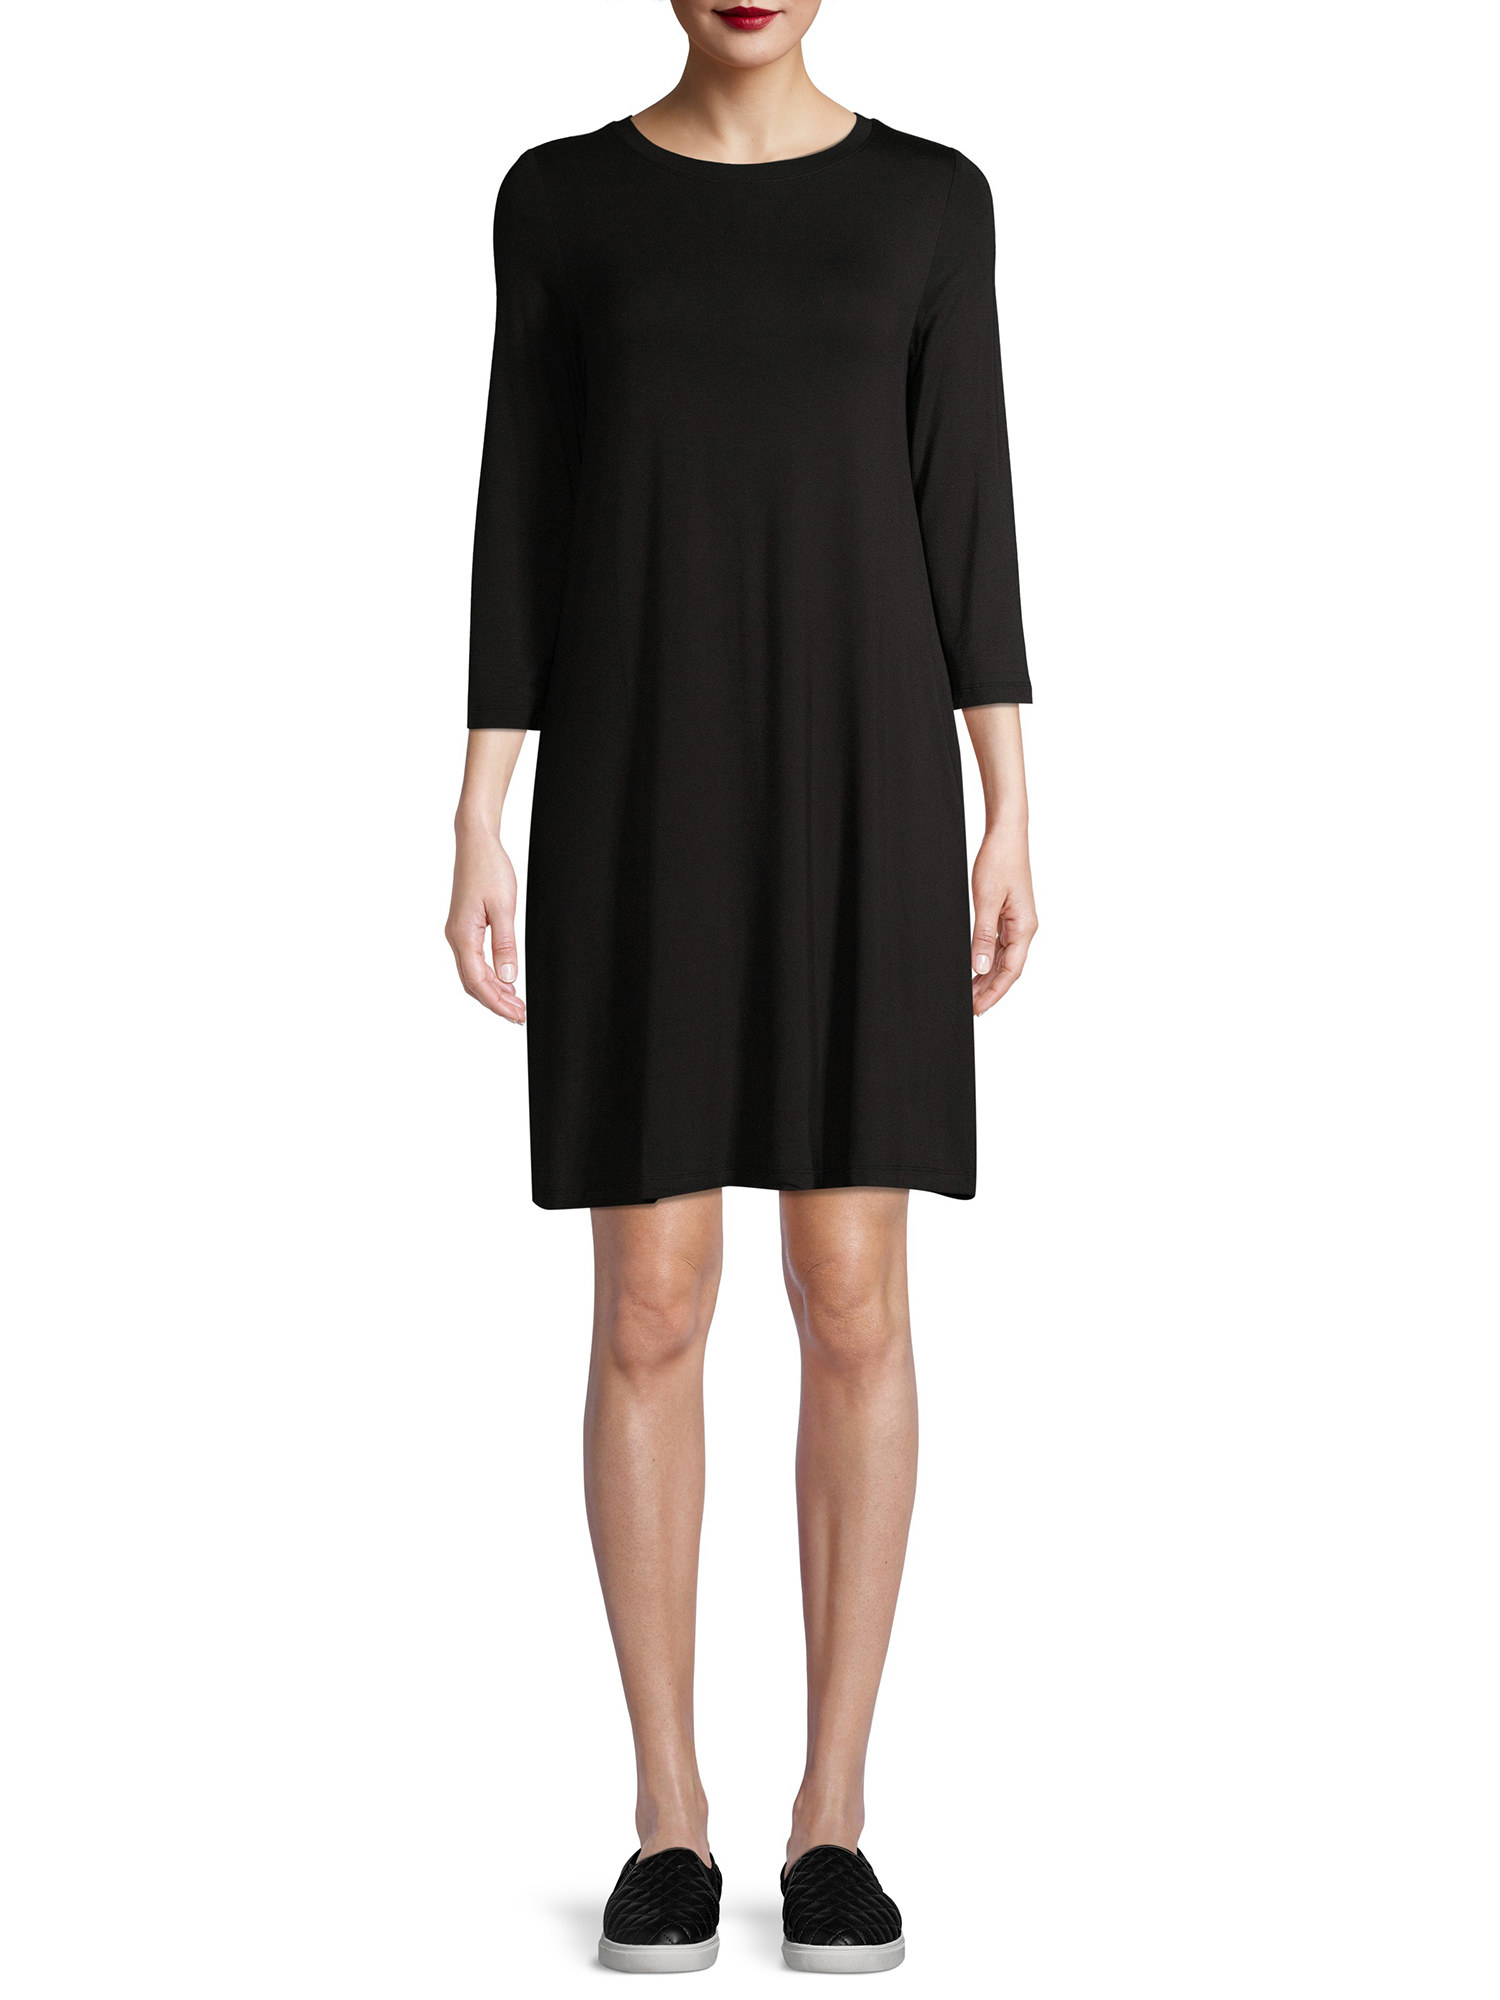 The black knit dress